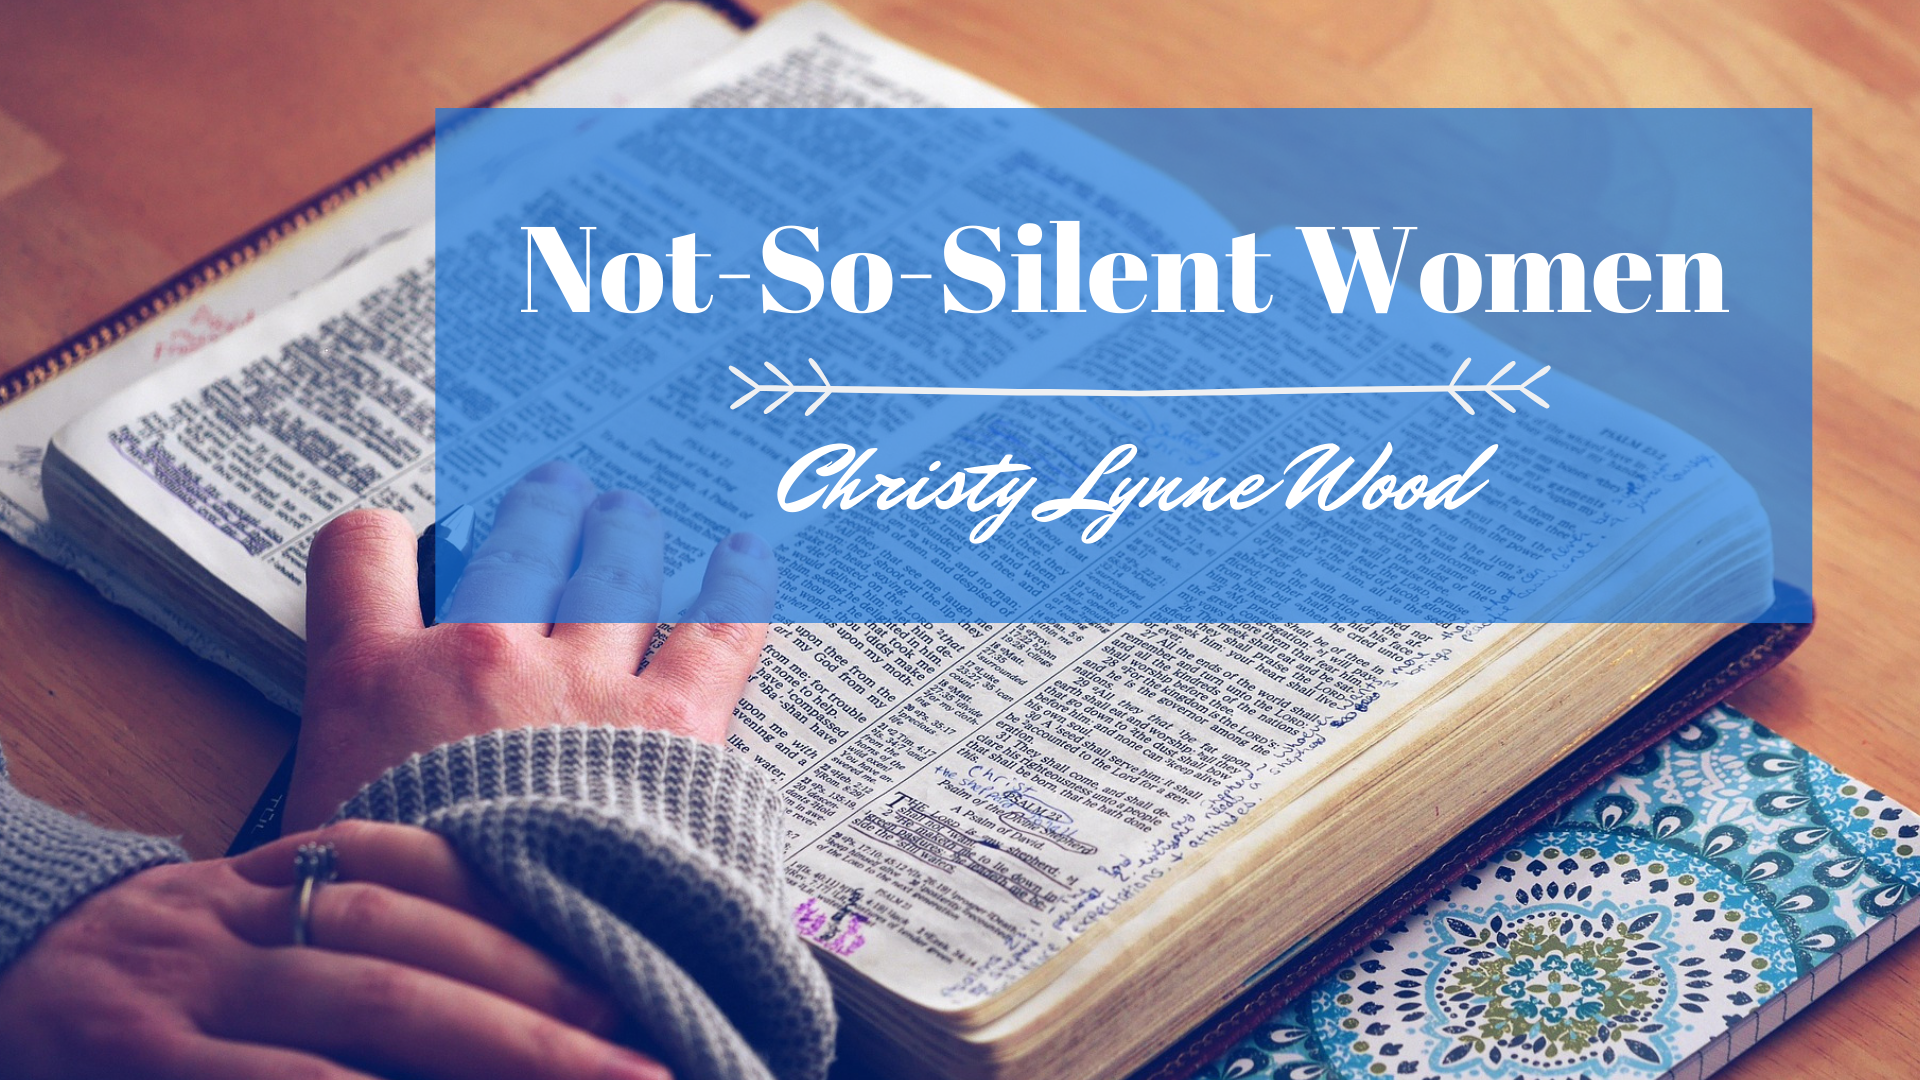 Not-So-Silent Women